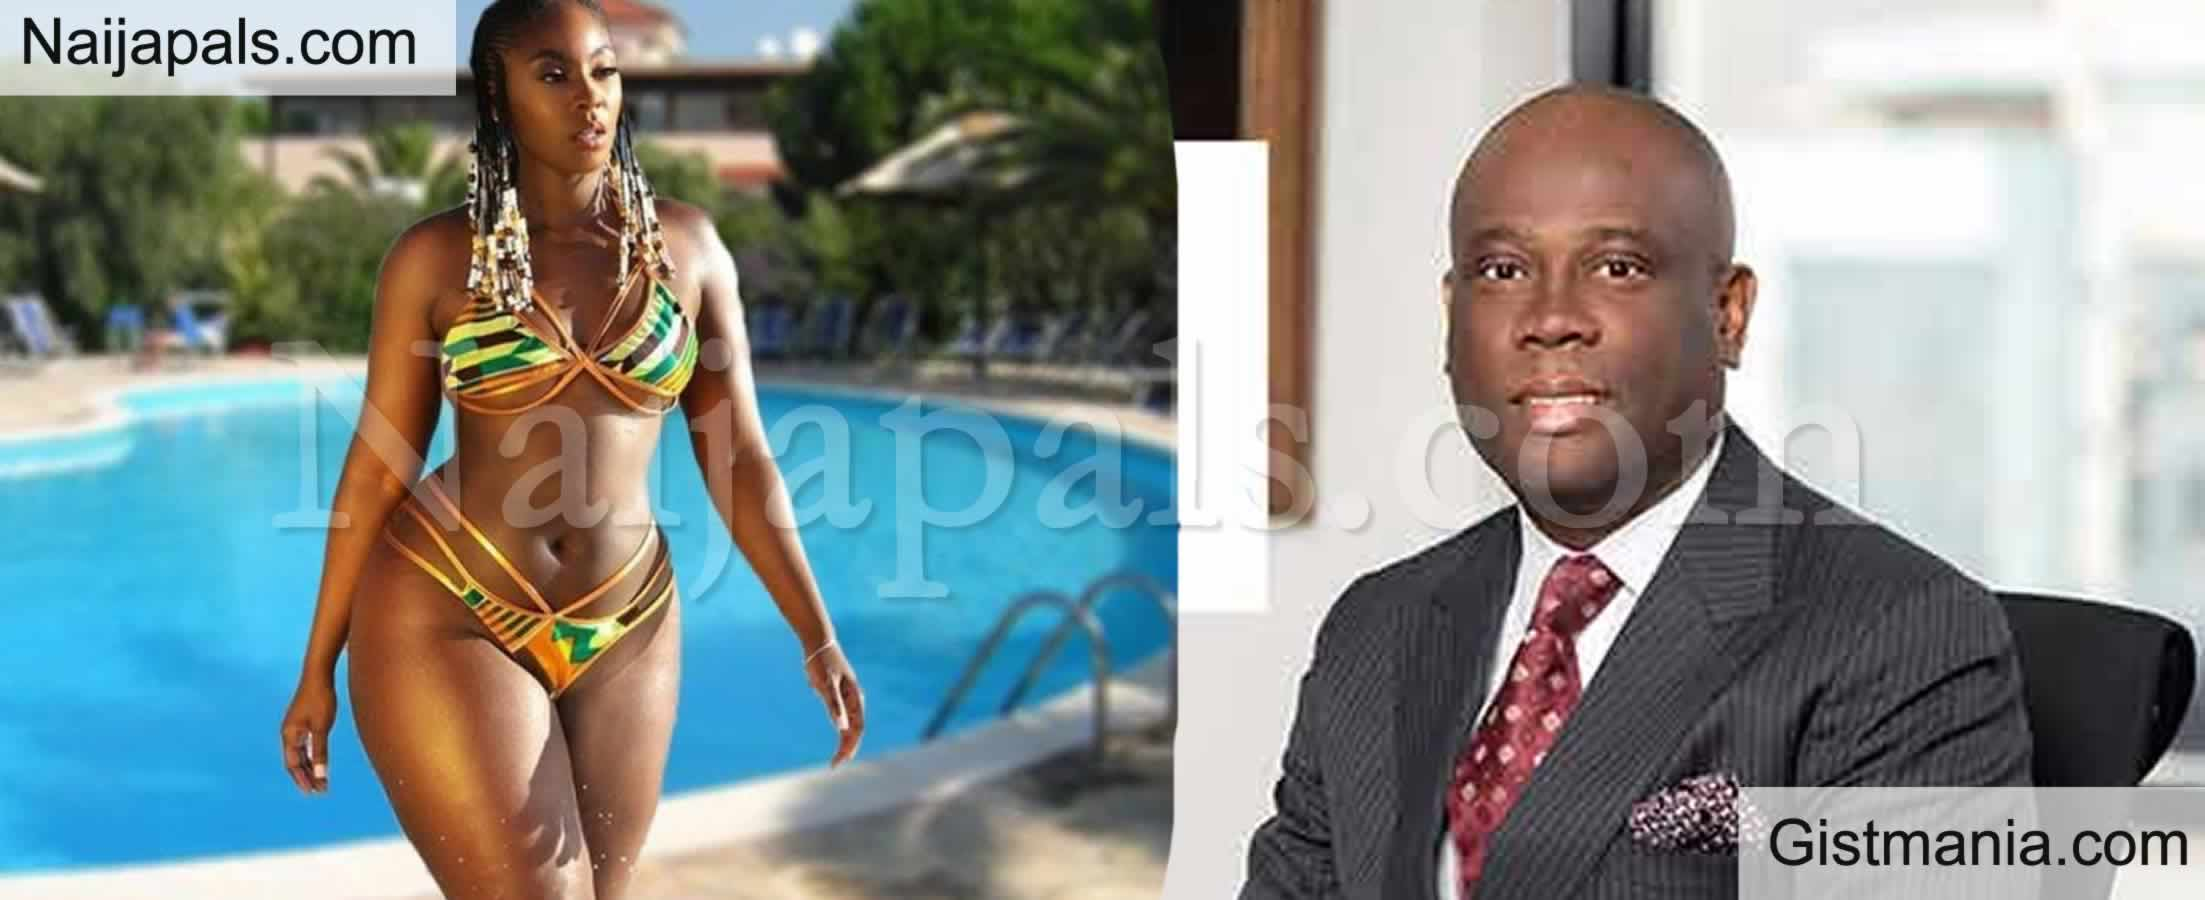 <img alt='.' class='lazyload' data-src='https://img.gistmania.com/emot/love.gif' /> <b>Tiwa Savaged Alleged To Be Having Affair With Access Bank CEO, Following New Sponsorship Deal</b>